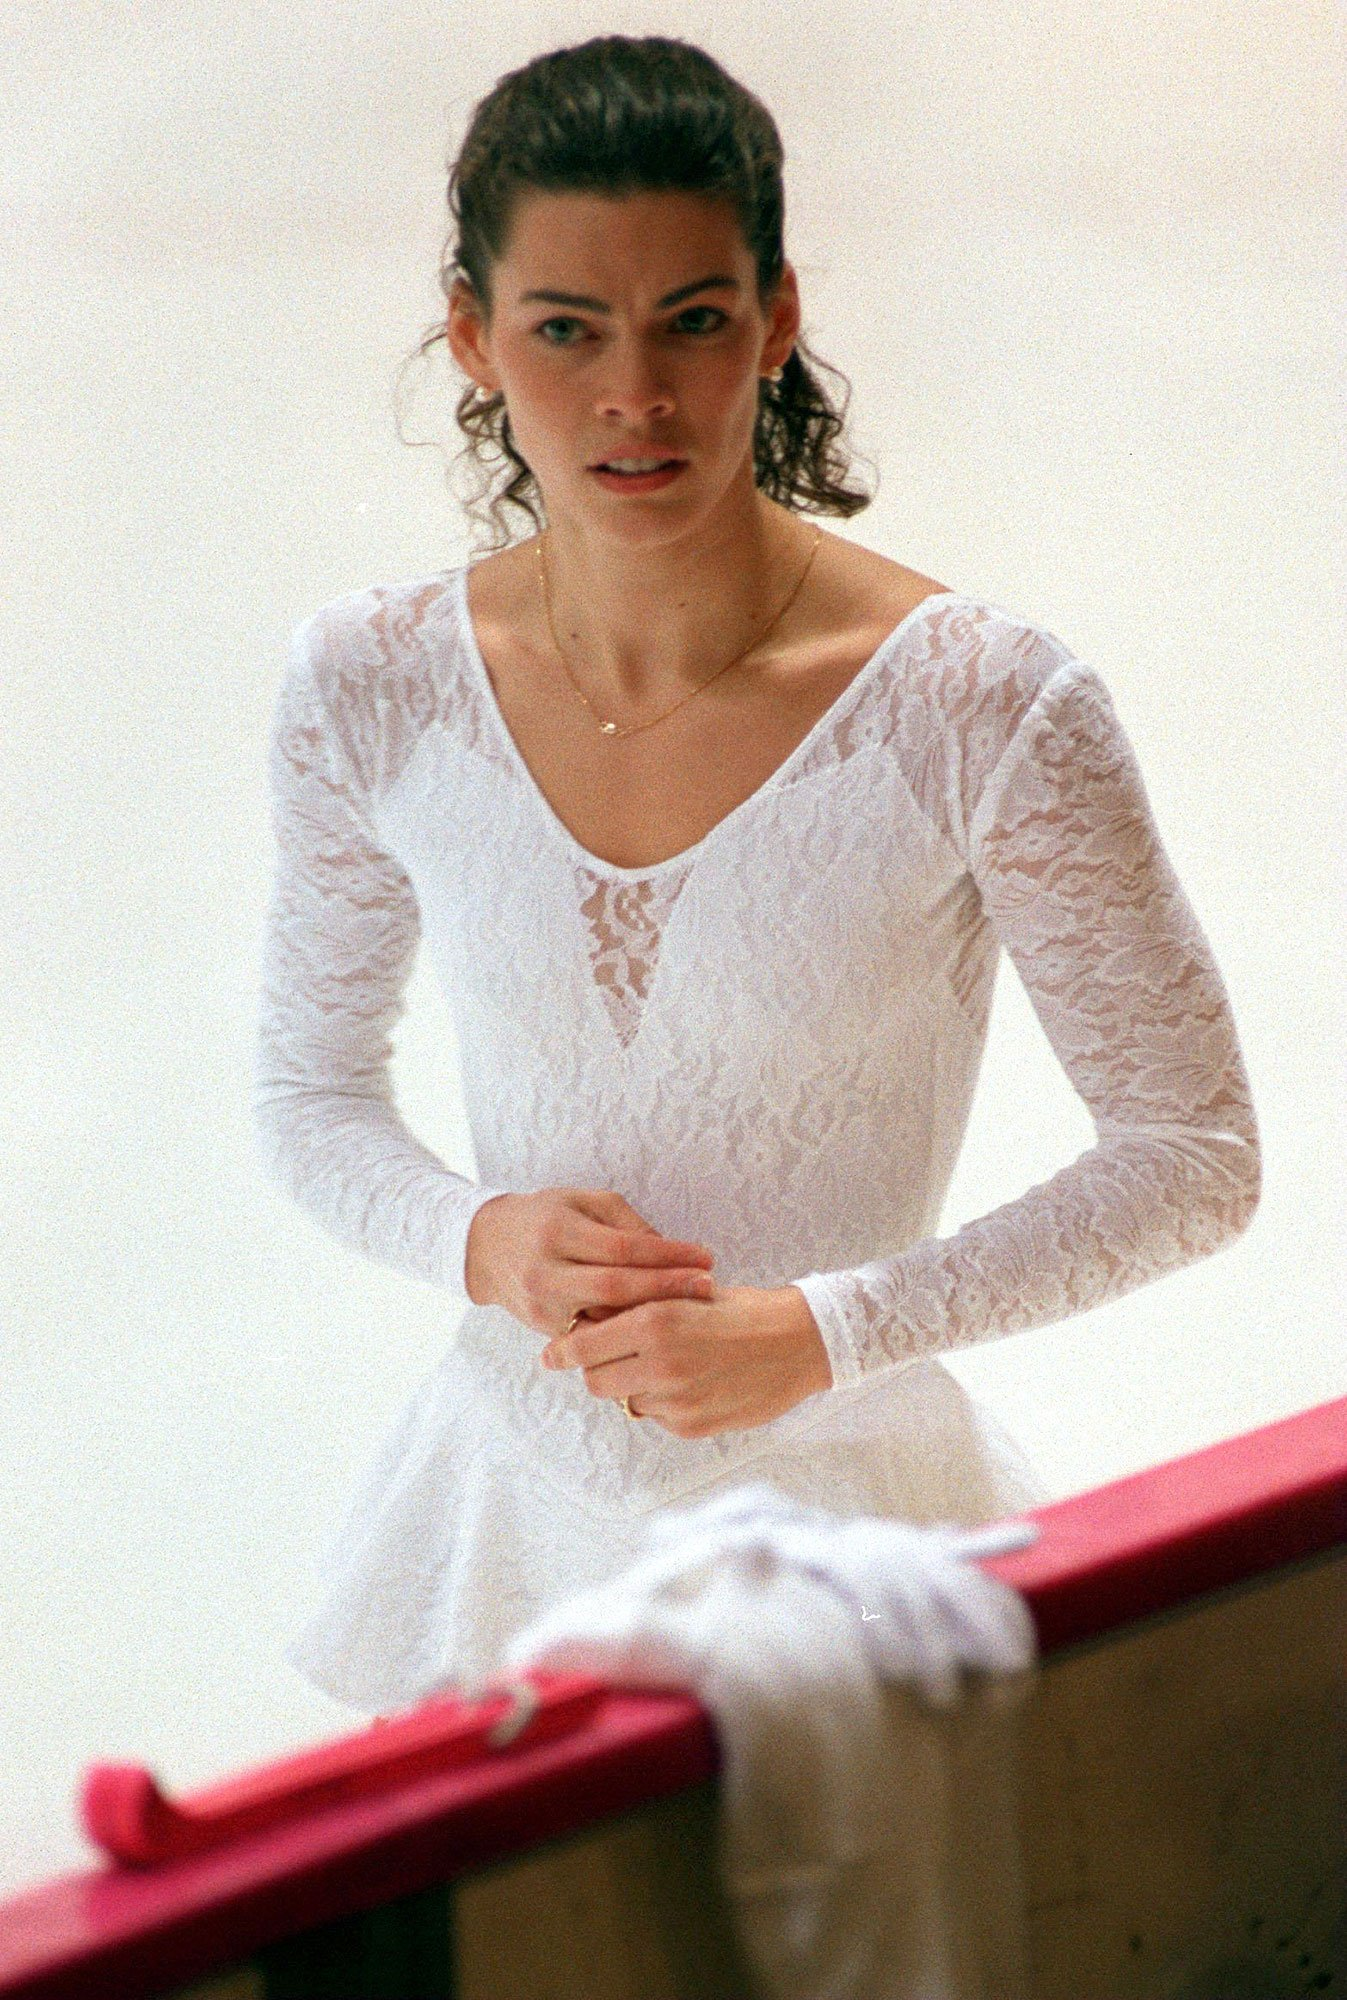 Nancy Kerrigan hasn't watched 'I, Tonya' and has 'nothing' to say about it